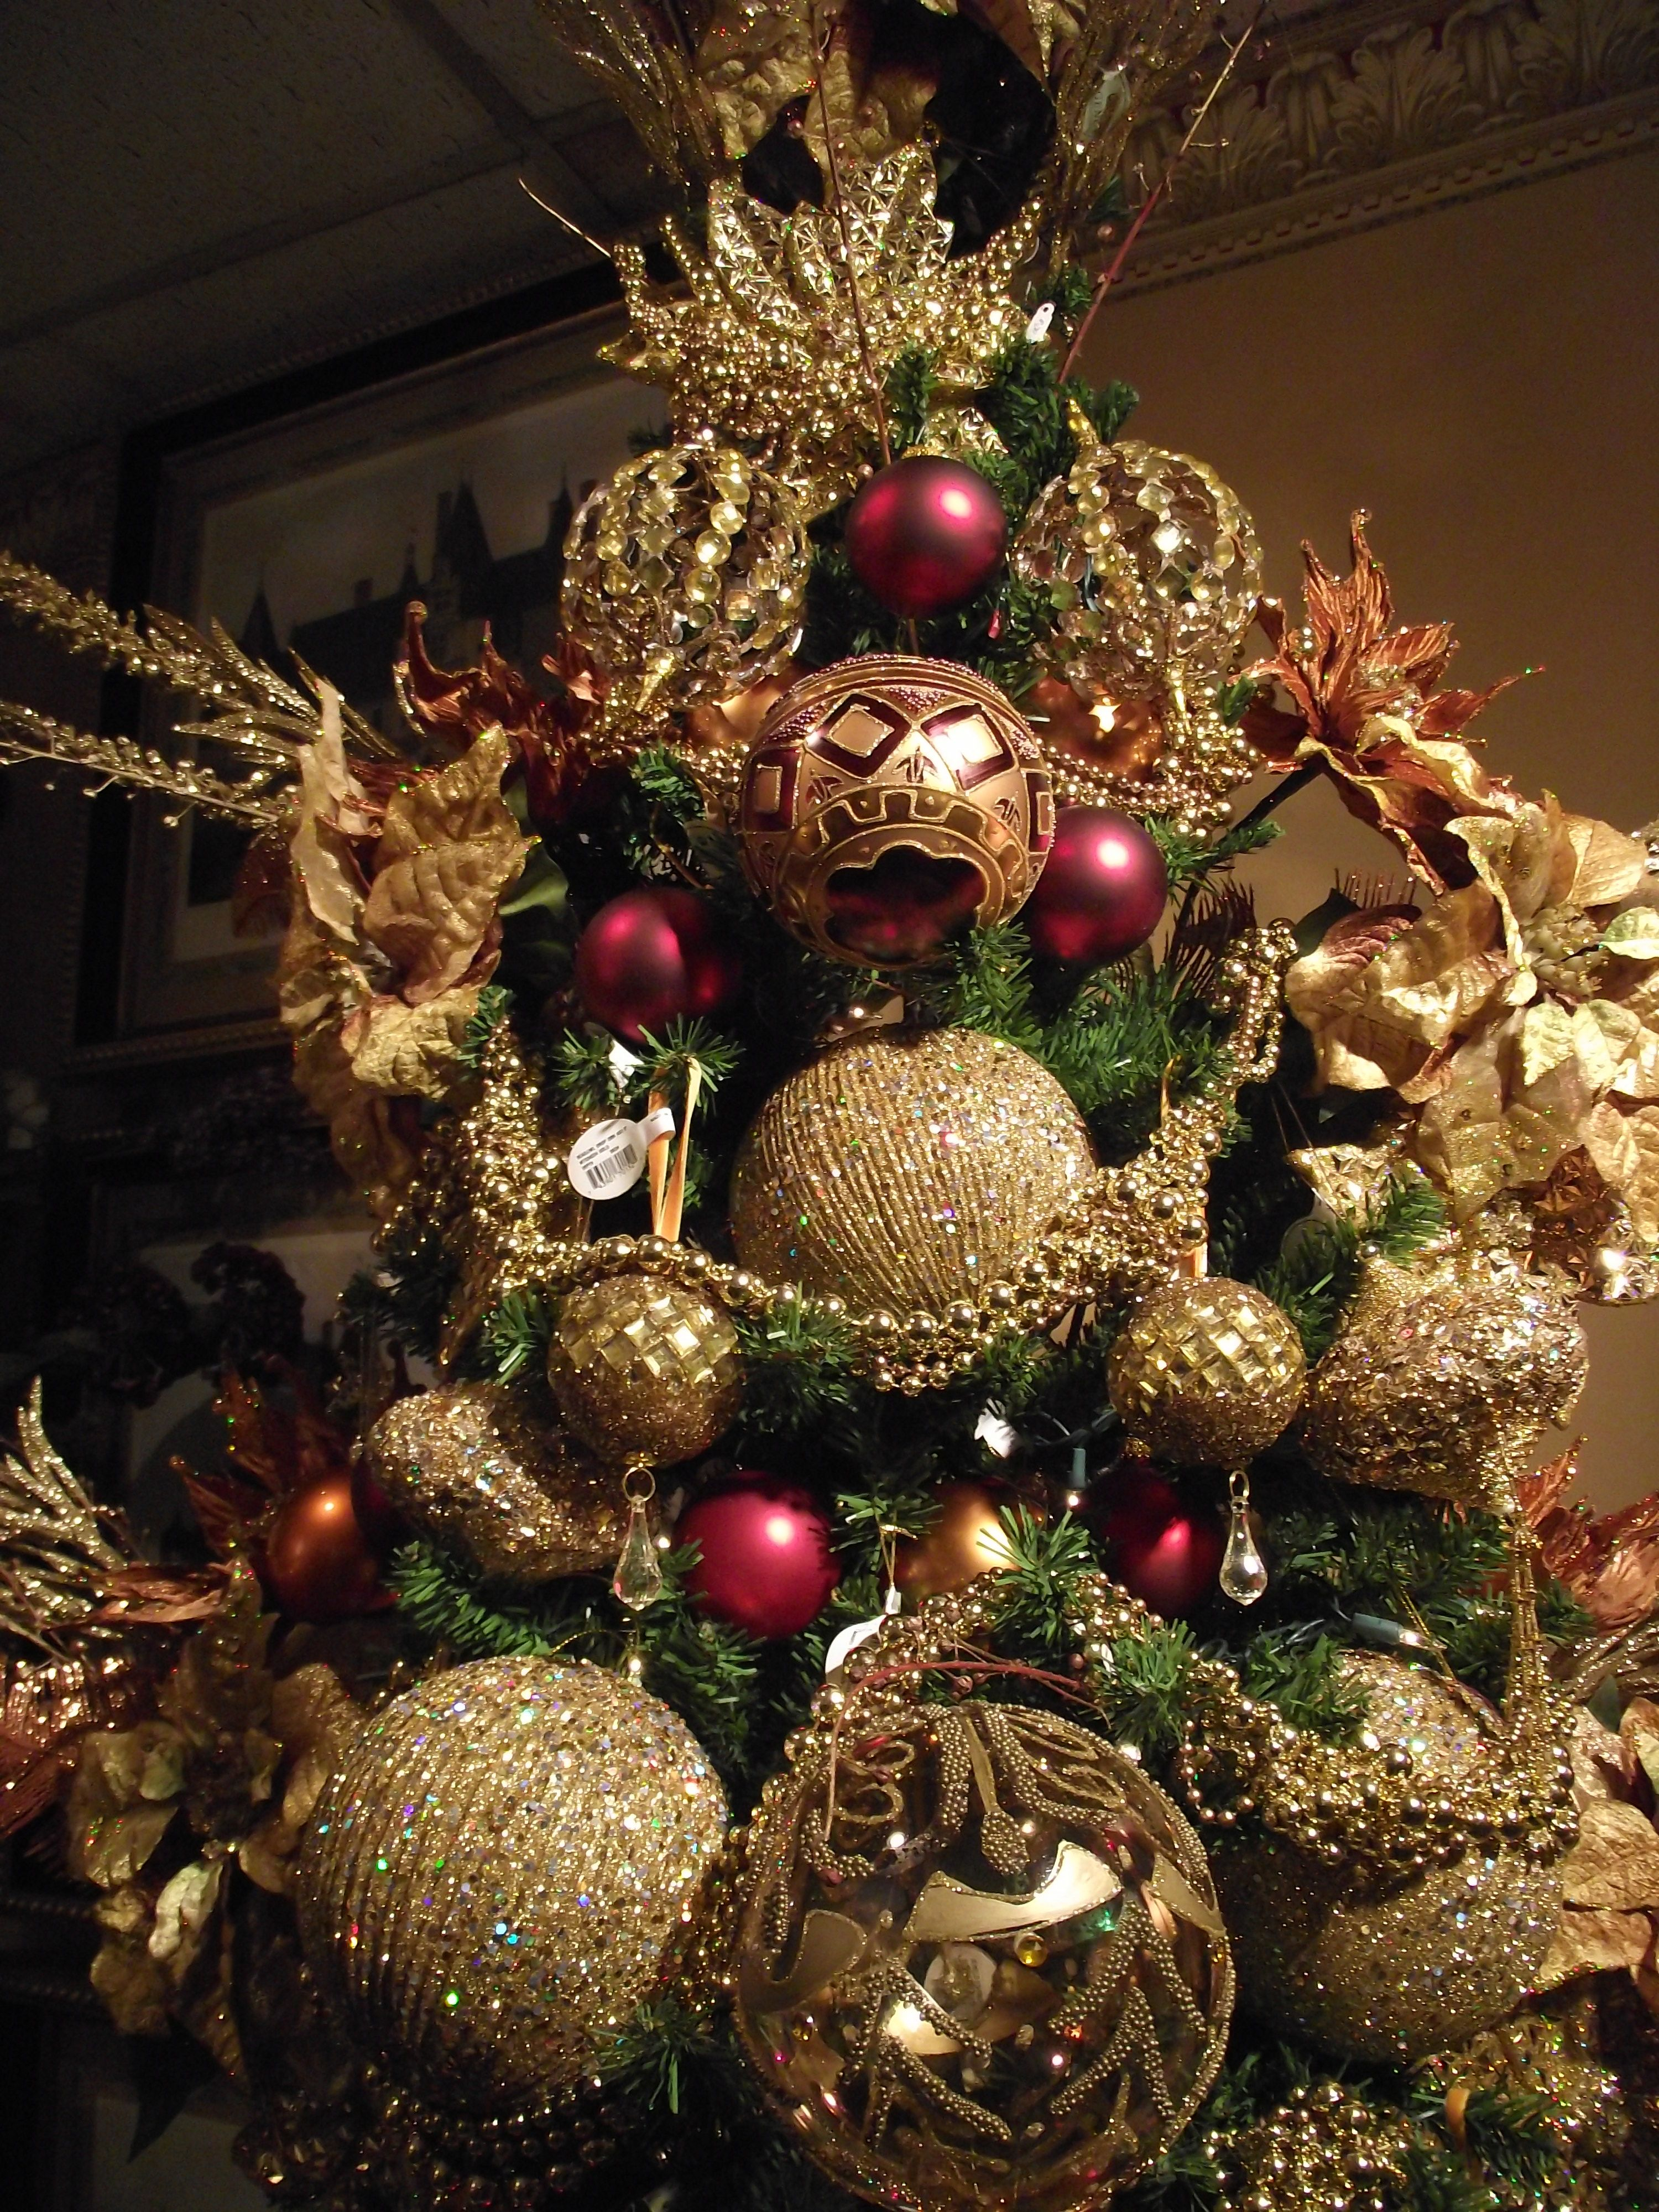 Christmas Decorations And Trees Uk : Red gold and copper tree check more at http hrenoten